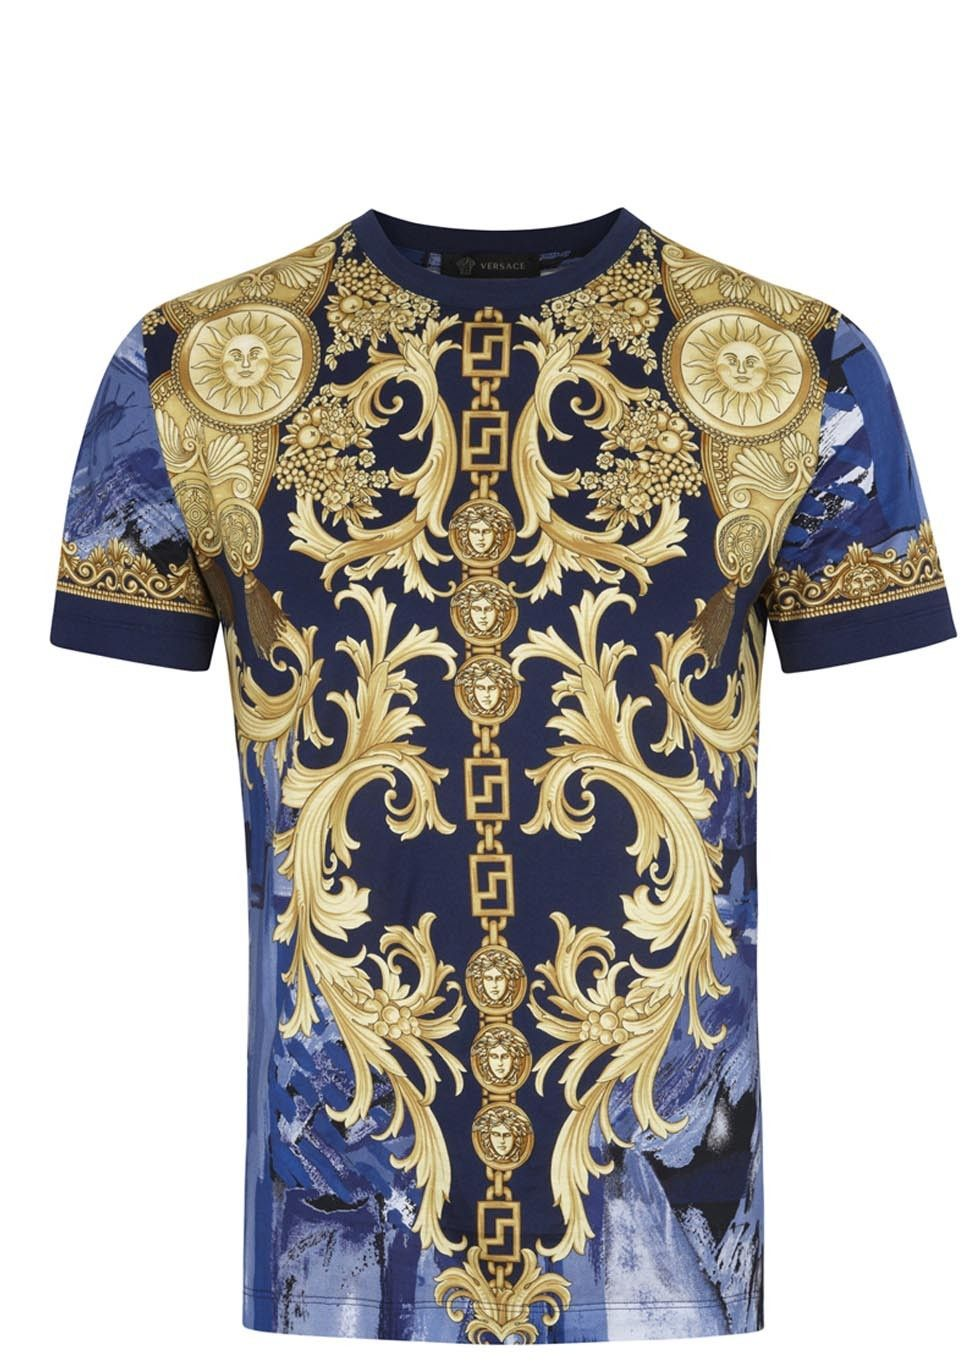 4c43093f Versace blue and gold cotton jersey T-shirt Baroque print Slips on 100%  cotton